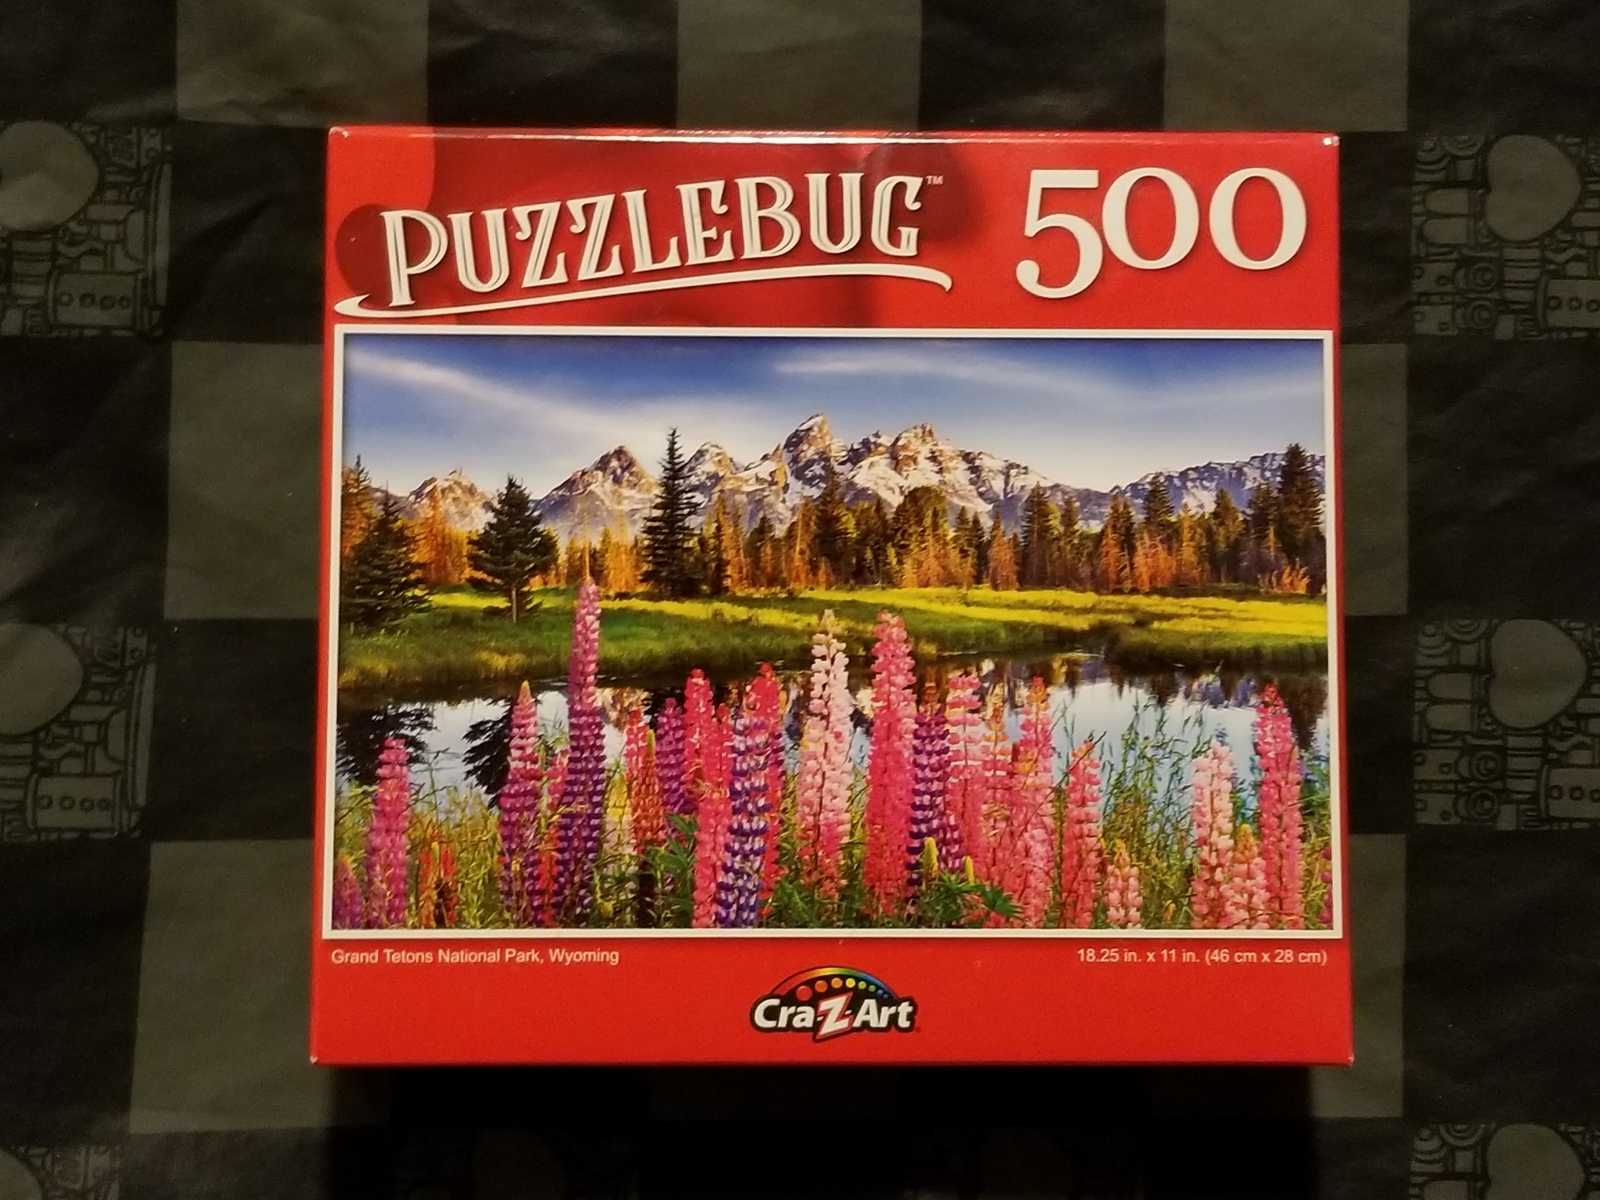 Cra-Z-Art Puzzlebug 500 Piece Puzzle - Grand Tentons National Park